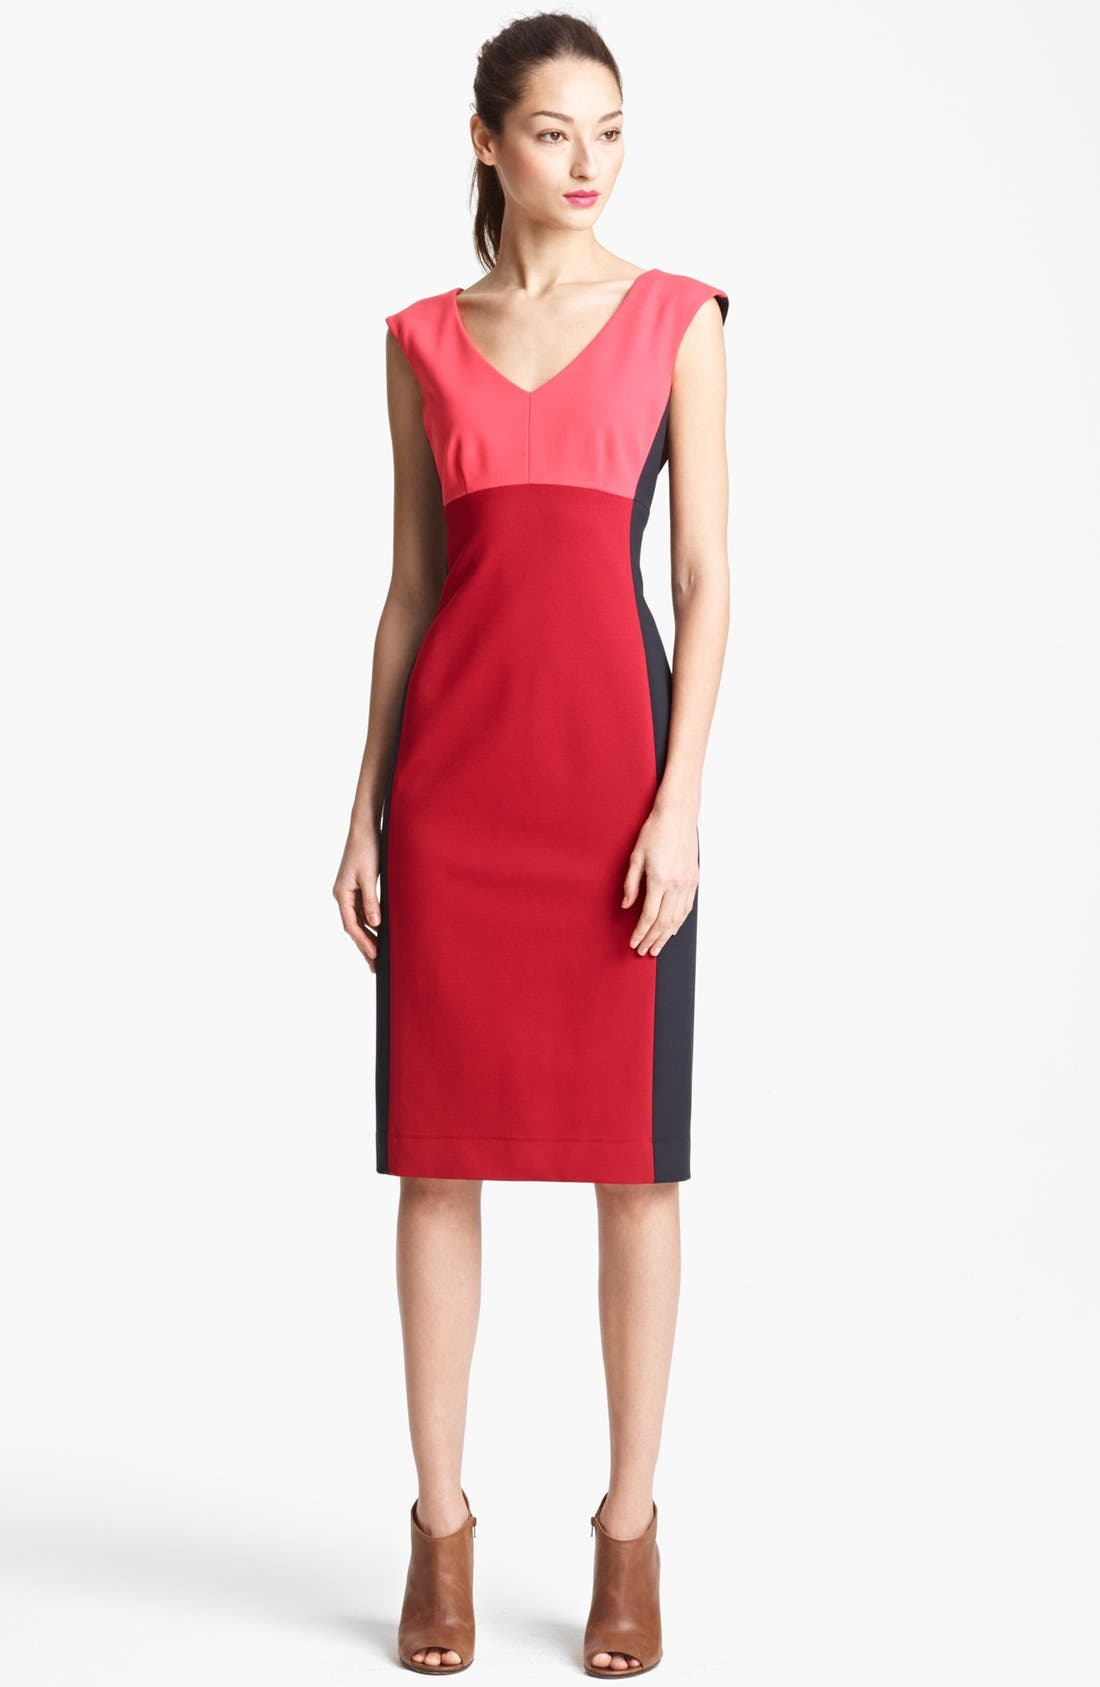 Alternate Image 1 Selected - Lida Baday Sleeveless Colorblock Dress